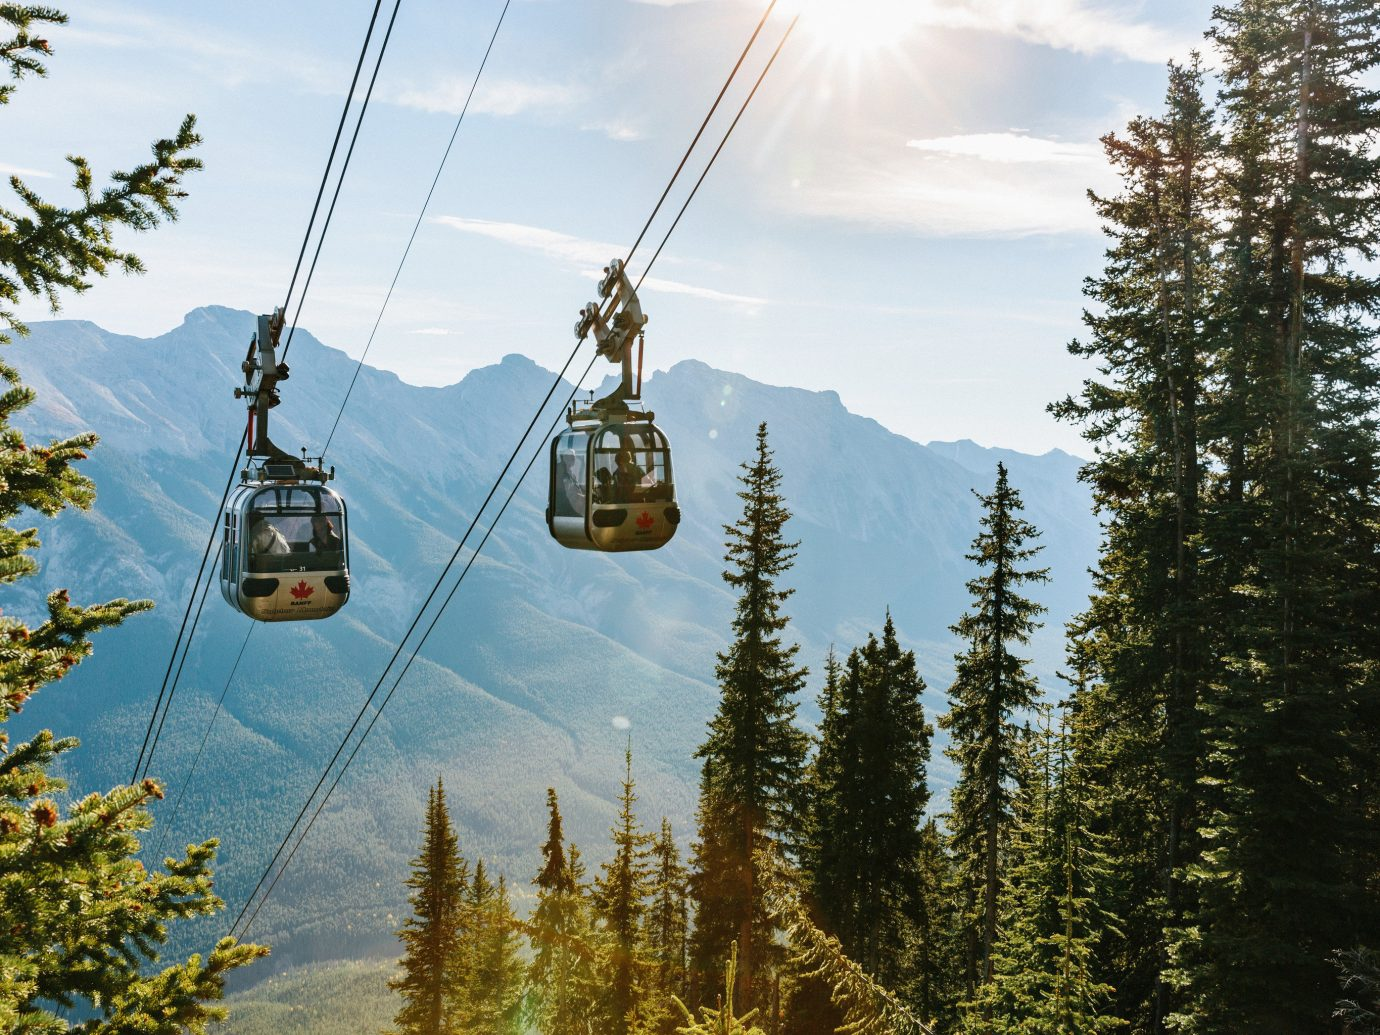 Canada Montreal Toronto tree Trip Ideas outdoor sky mountain cable car mountain range Adventure Forest vehicle wooded